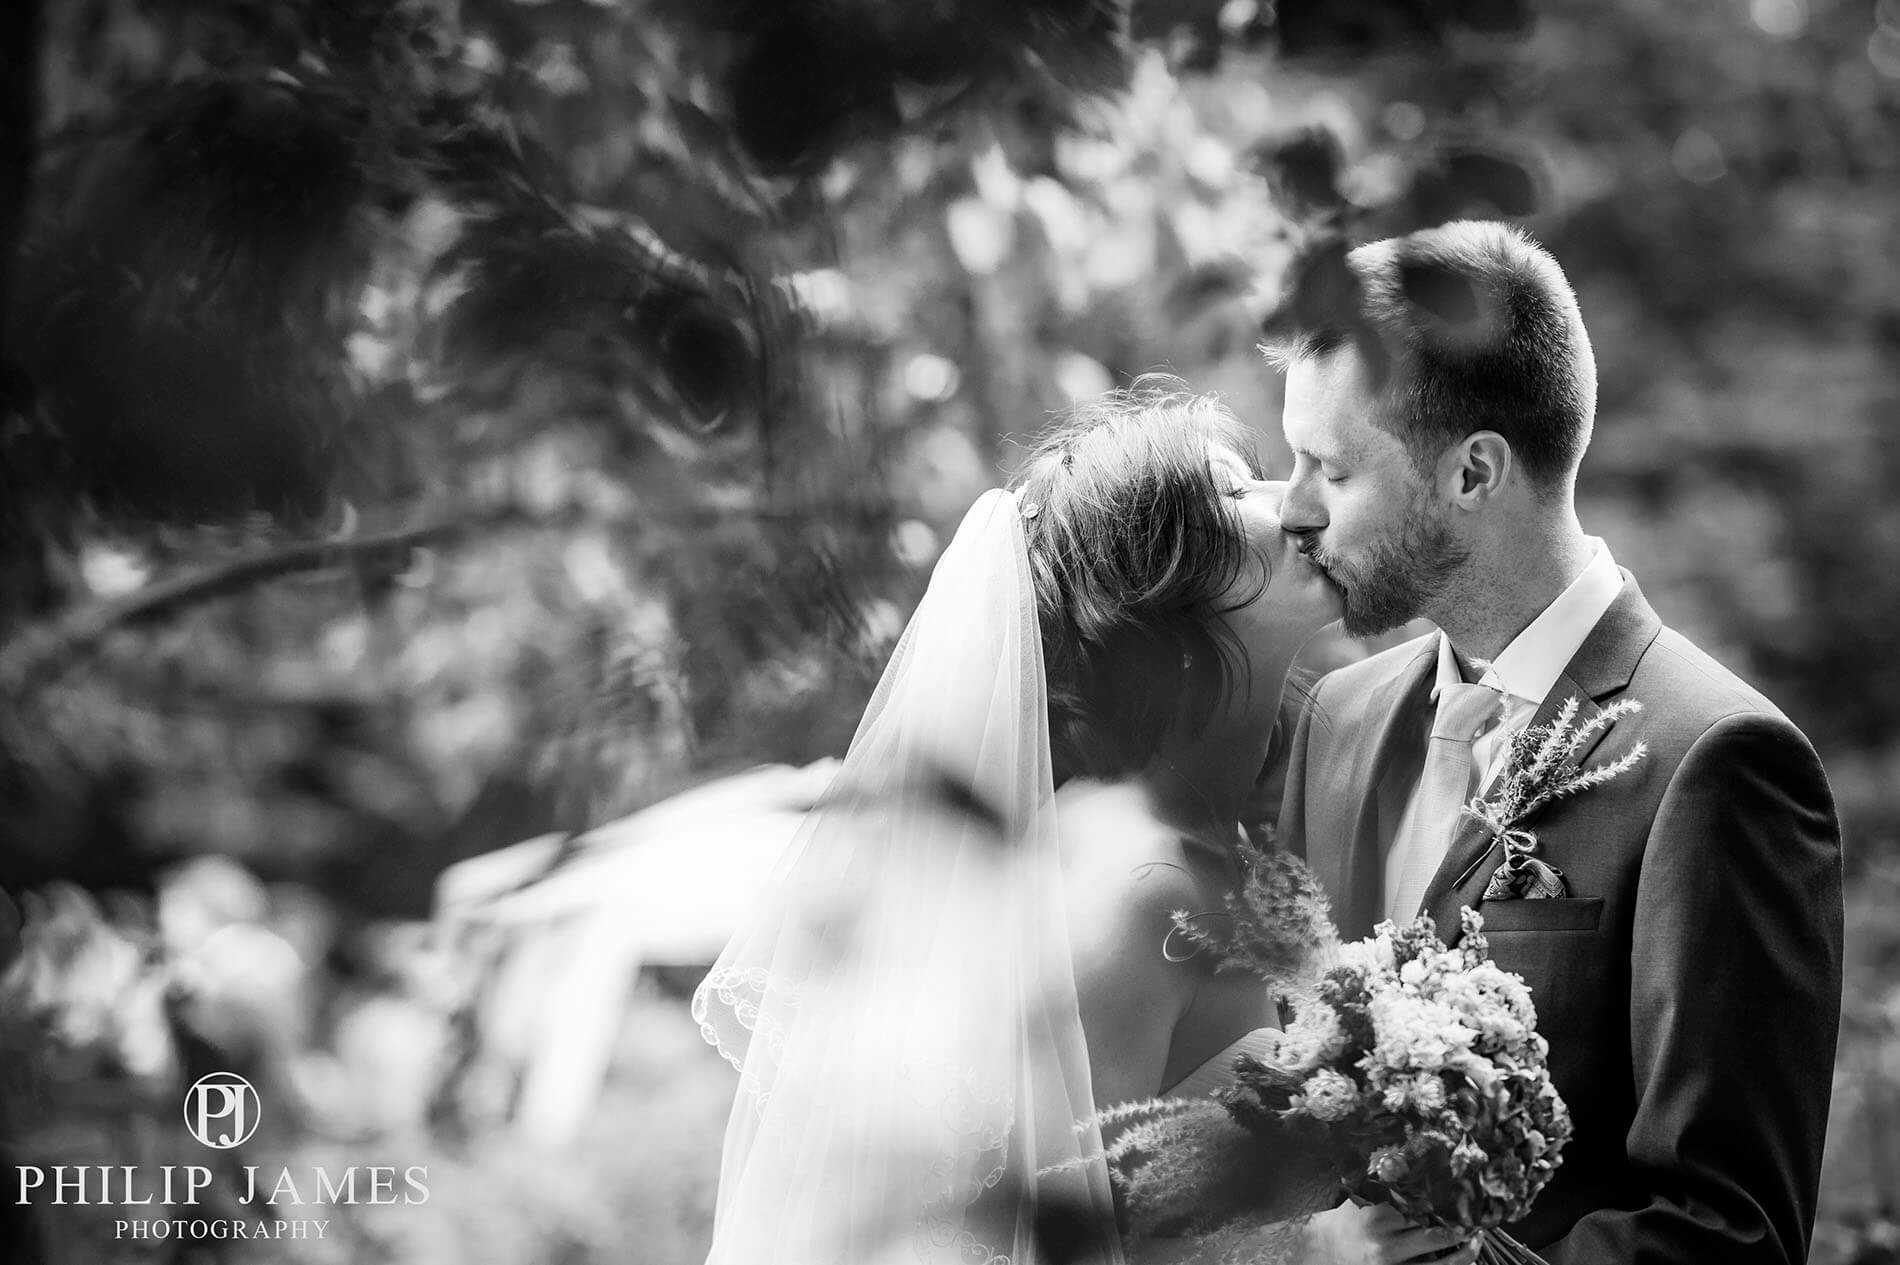 Birmingham Wedding Photographer - Philip James Photography based in Solihull (15 of 68)